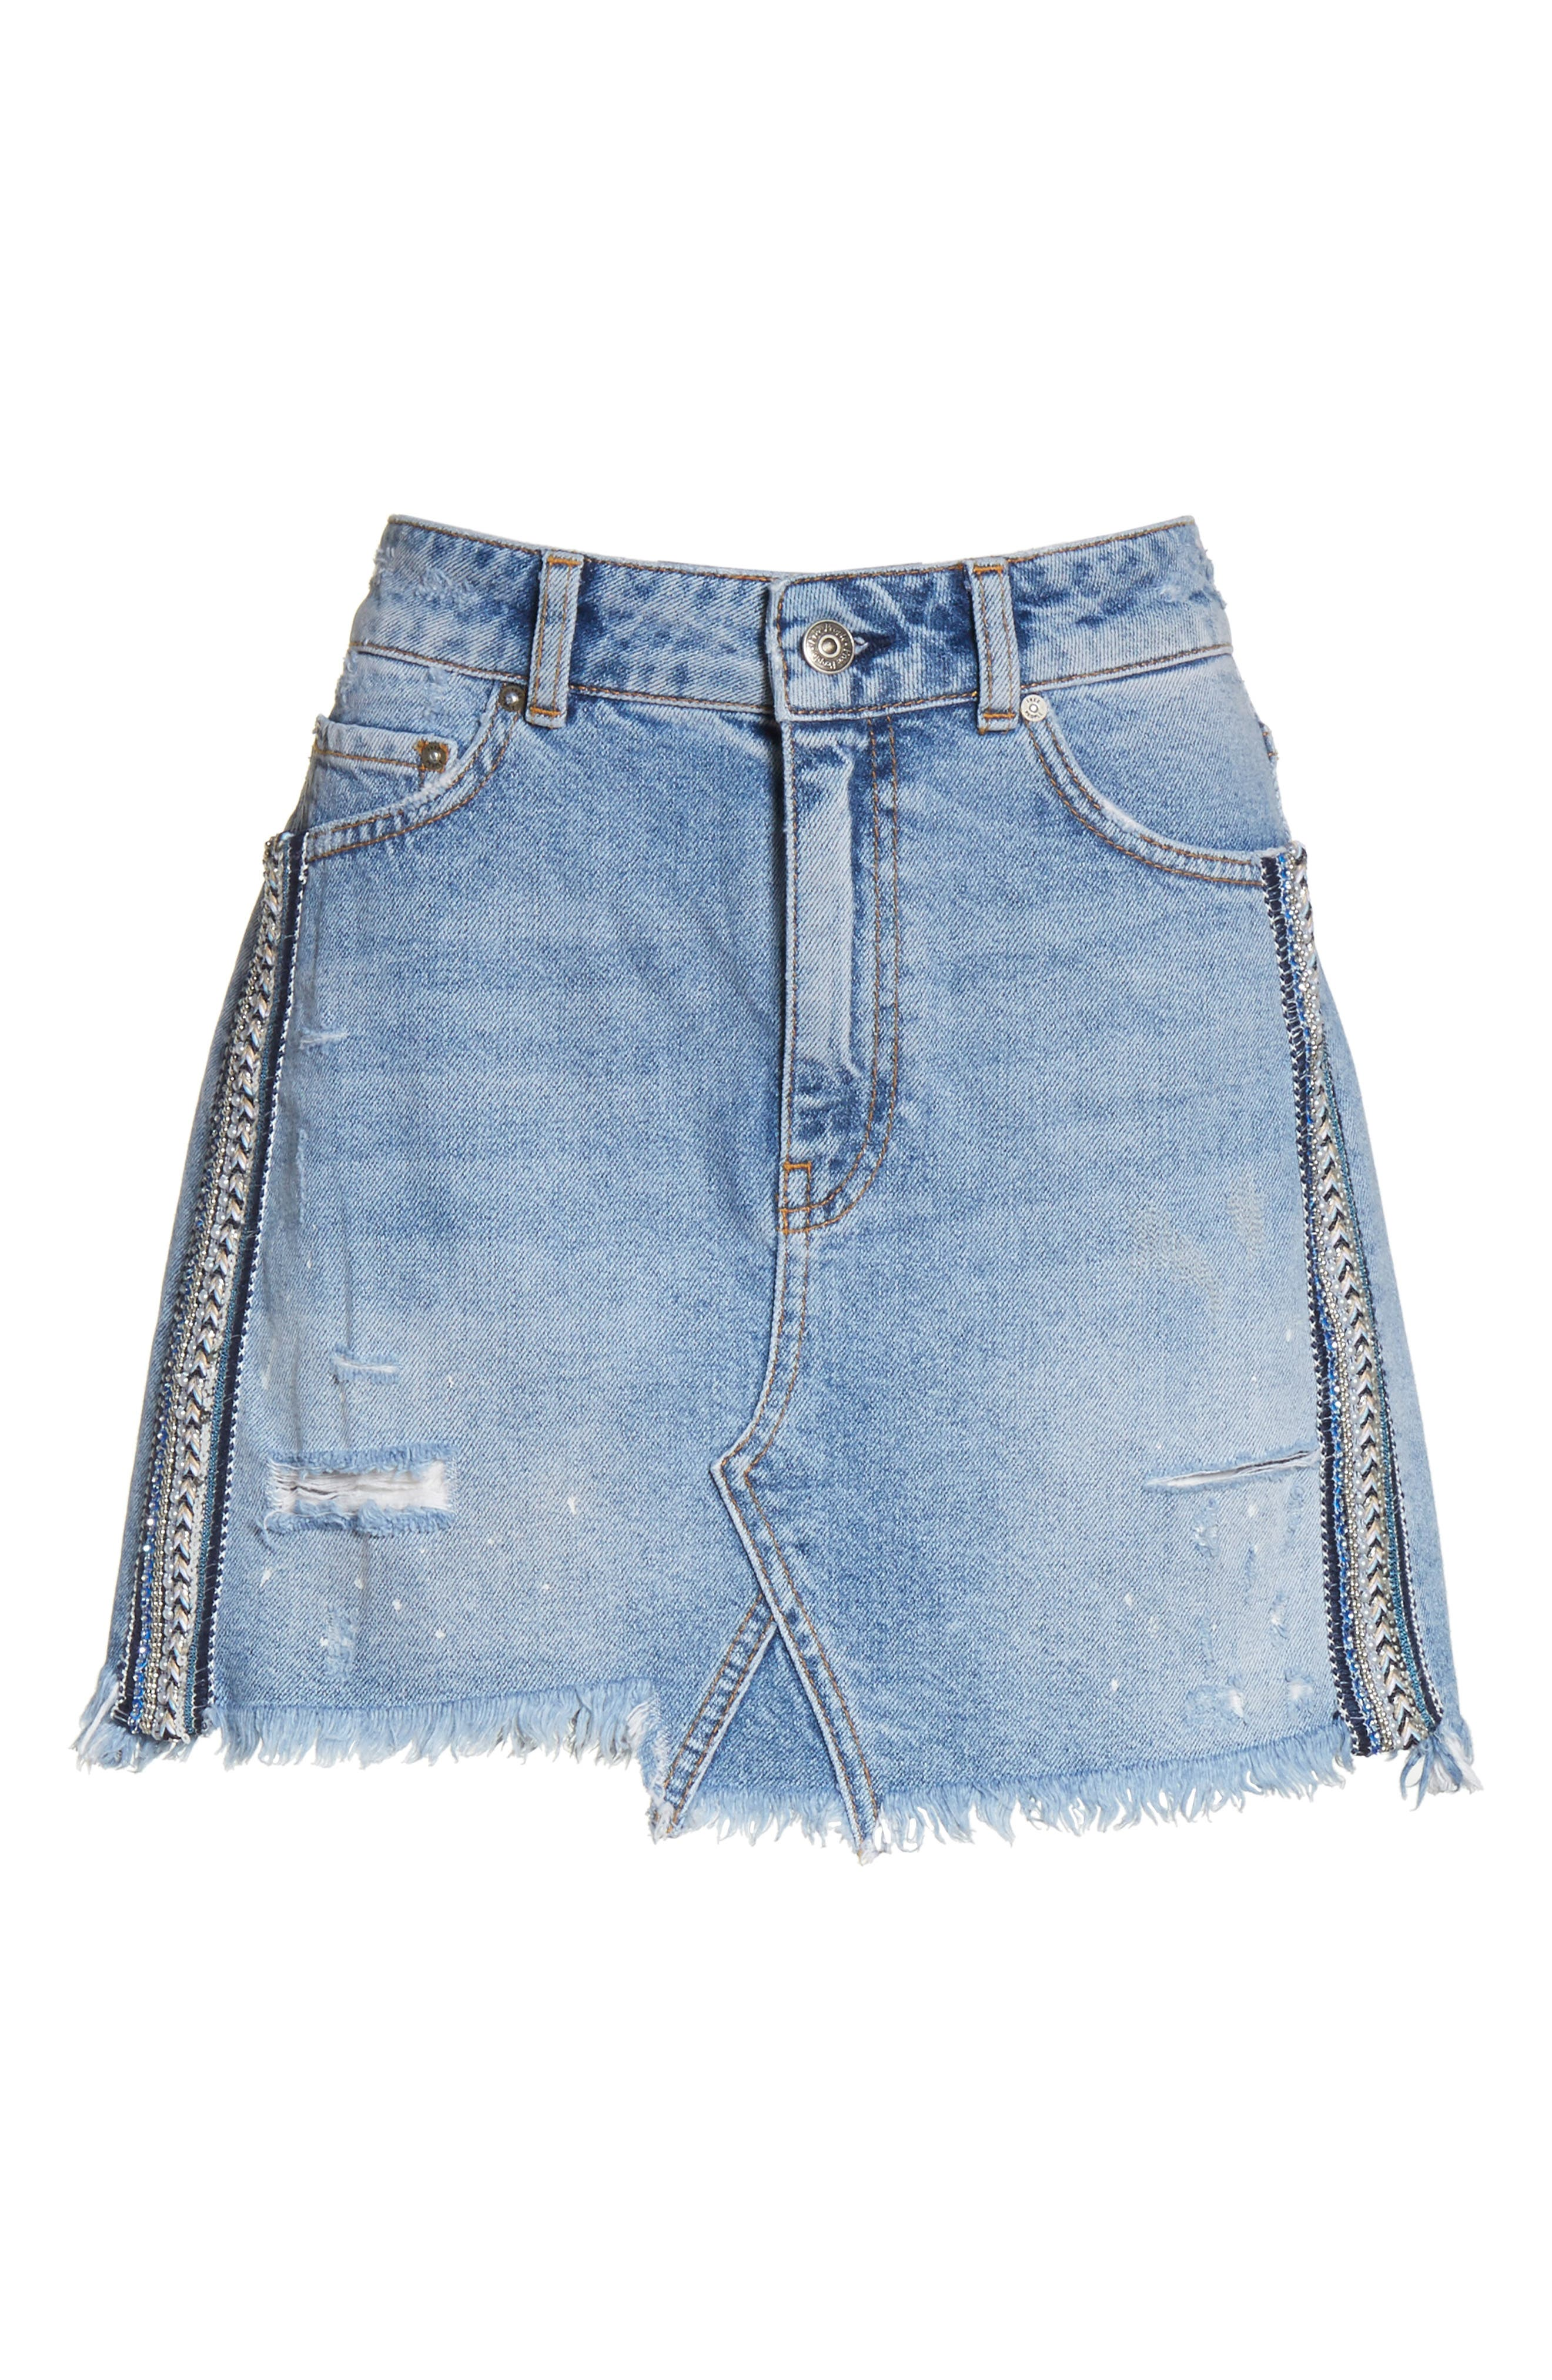 FREE PEOPLE,                             Side Stripe Embellished Miniskirt,                             Alternate thumbnail 6, color,                             400